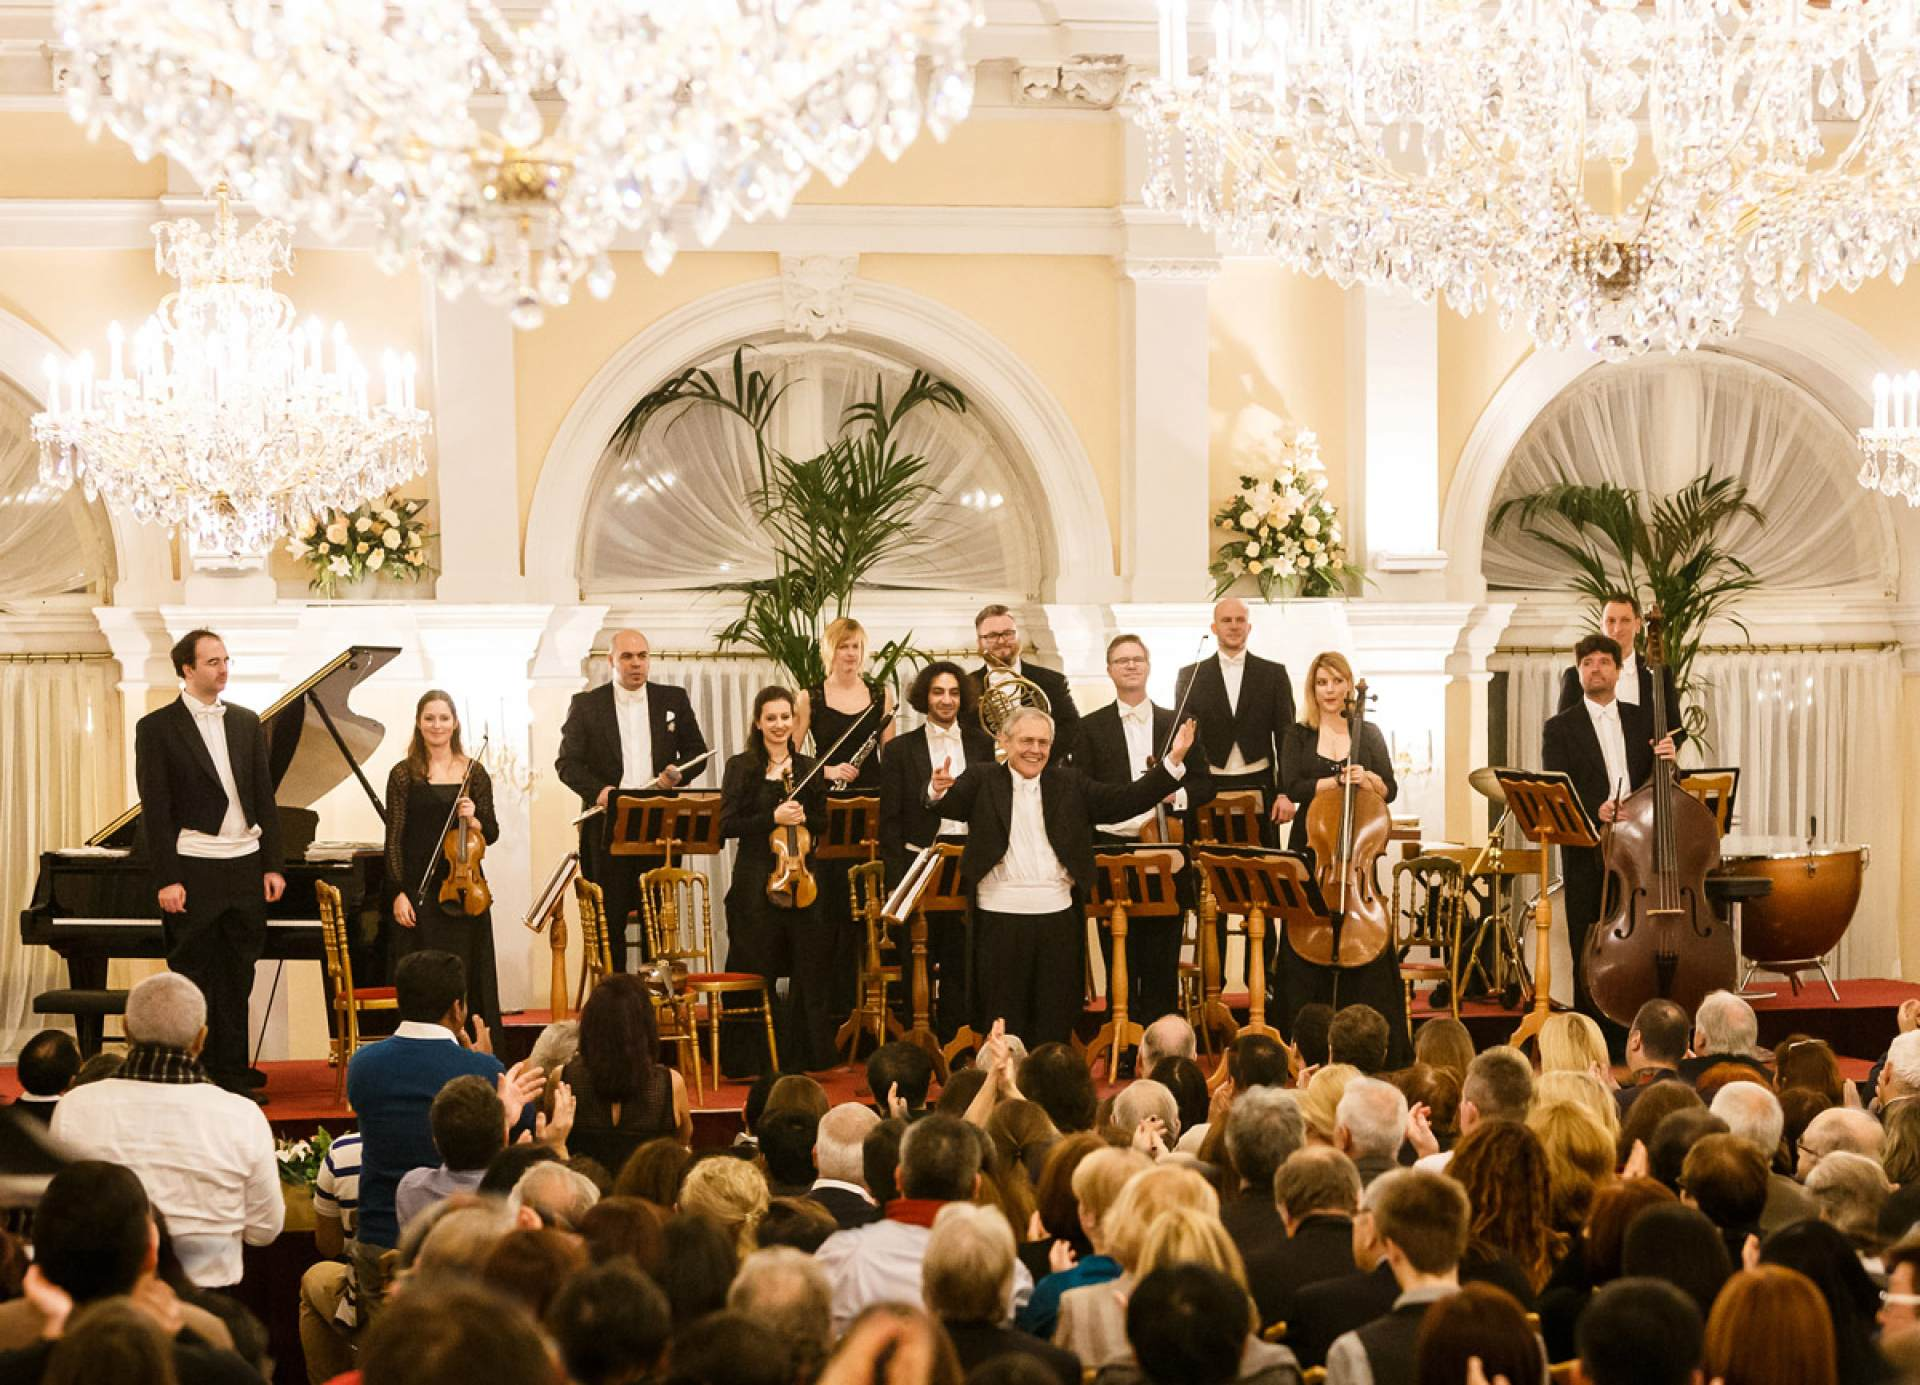 Strauss and Mozart Concerts Vienna Kursalon